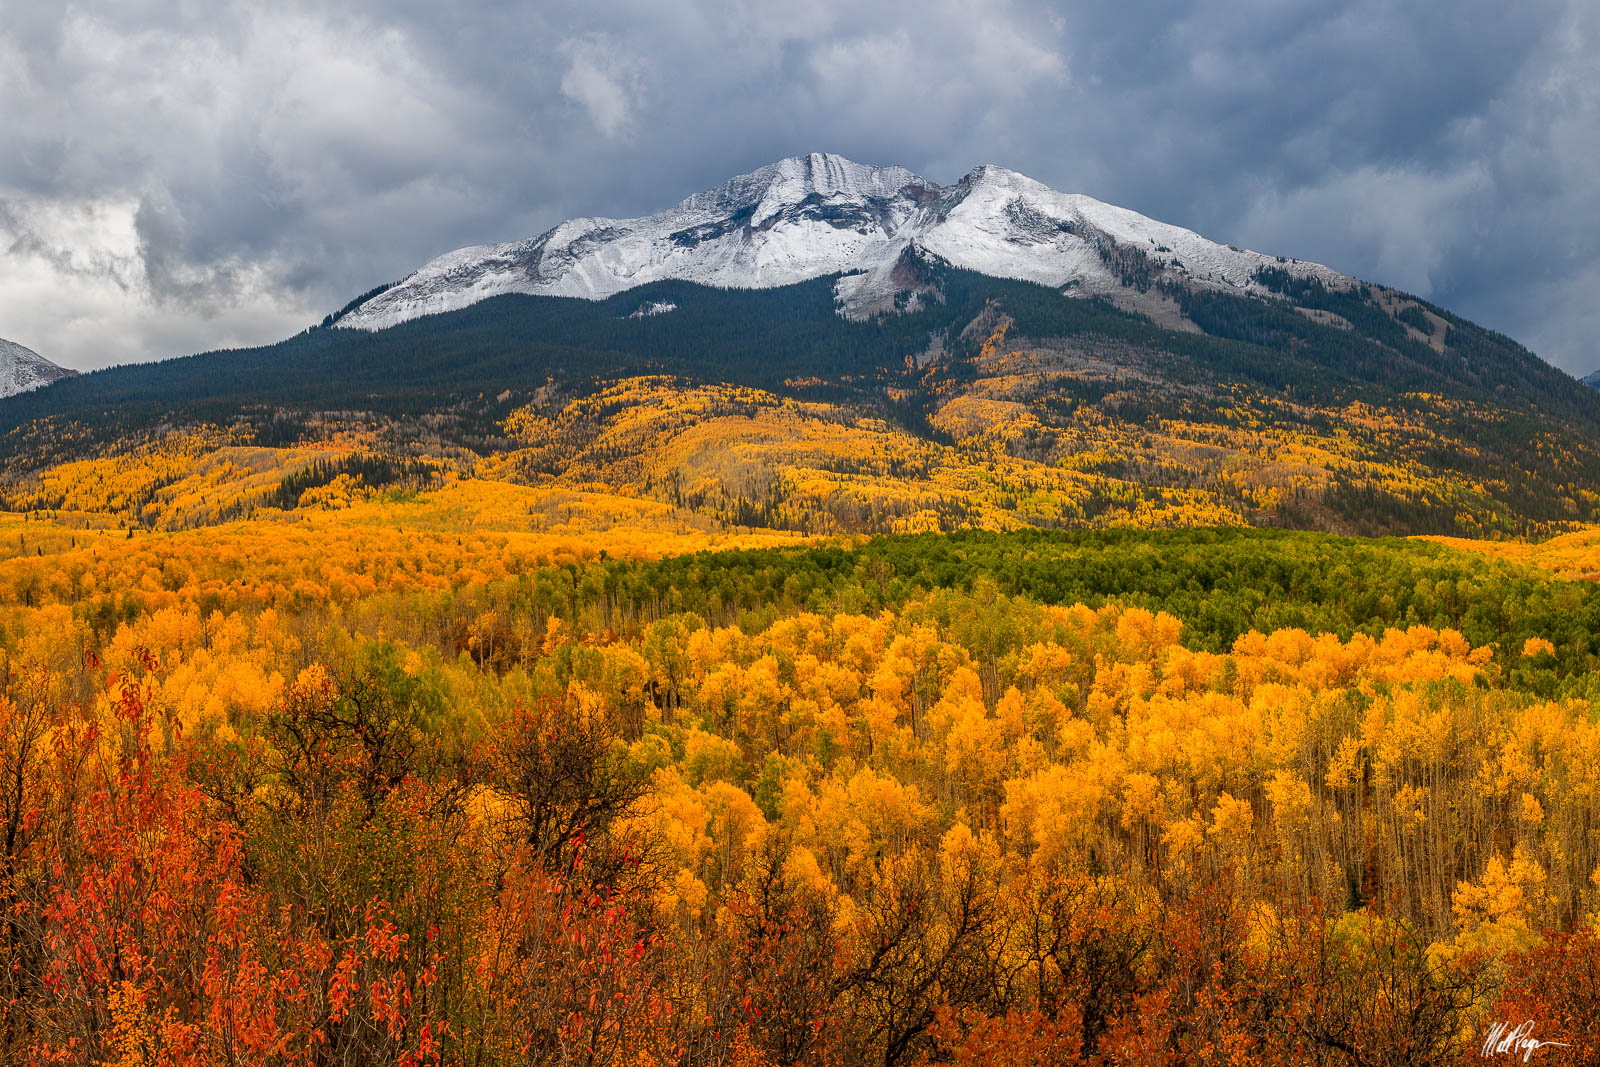 Aspen Trees, Autumn, Clouds, Colorado, Crested Butte, Drama, Fall, Fall Colors, Landscape, Moody, Mountains, Stormy, West Elk Mountains, photo